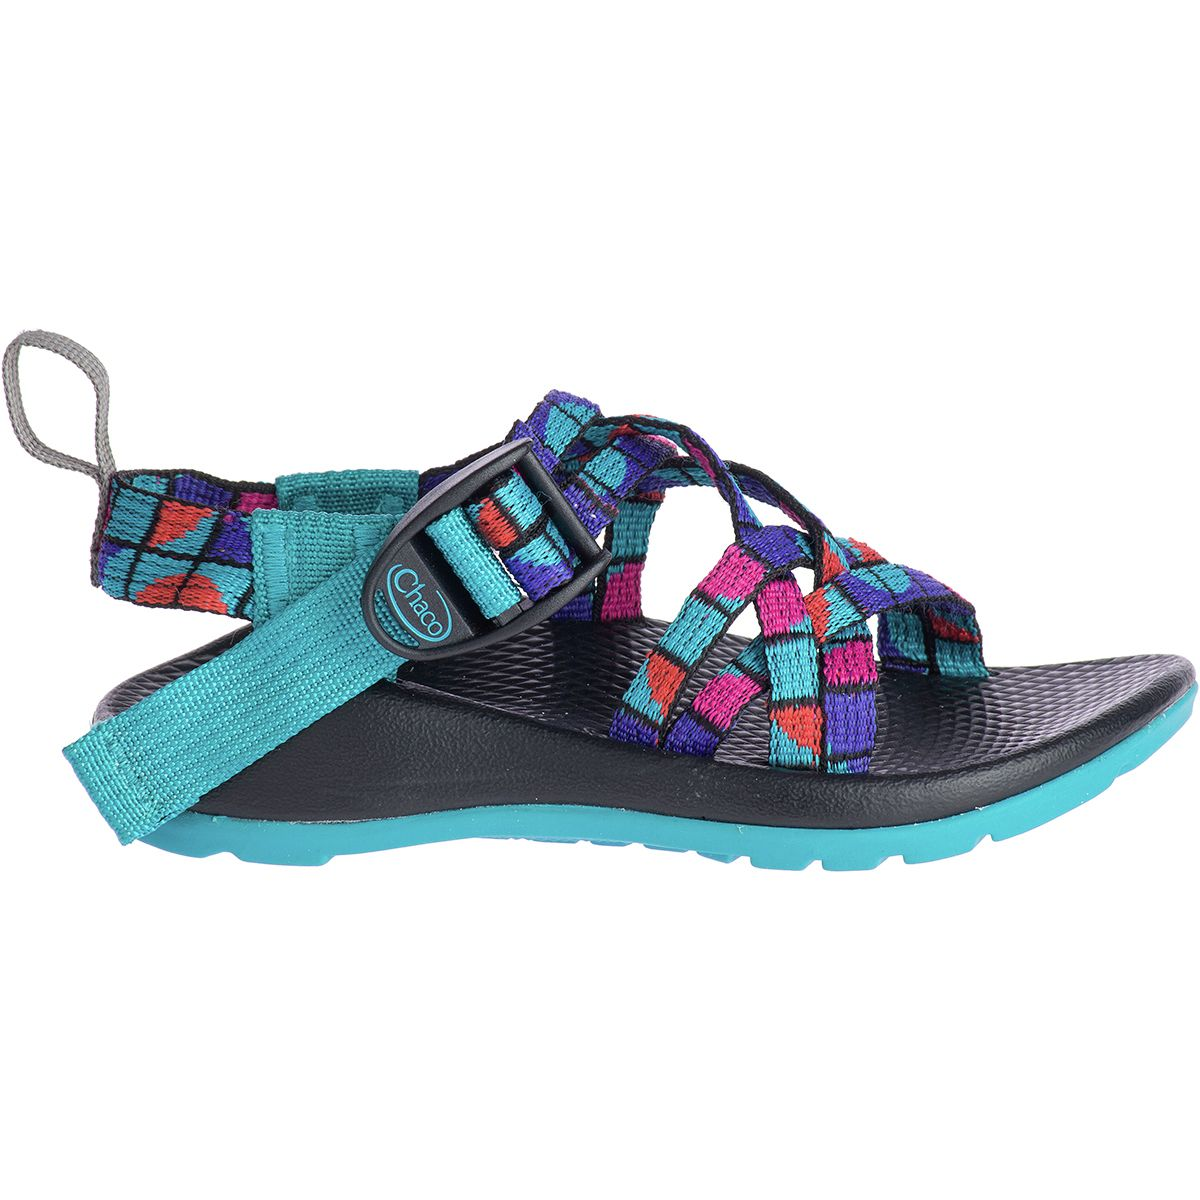 Chaco ZX/1 EcoTread Sandal - Girls